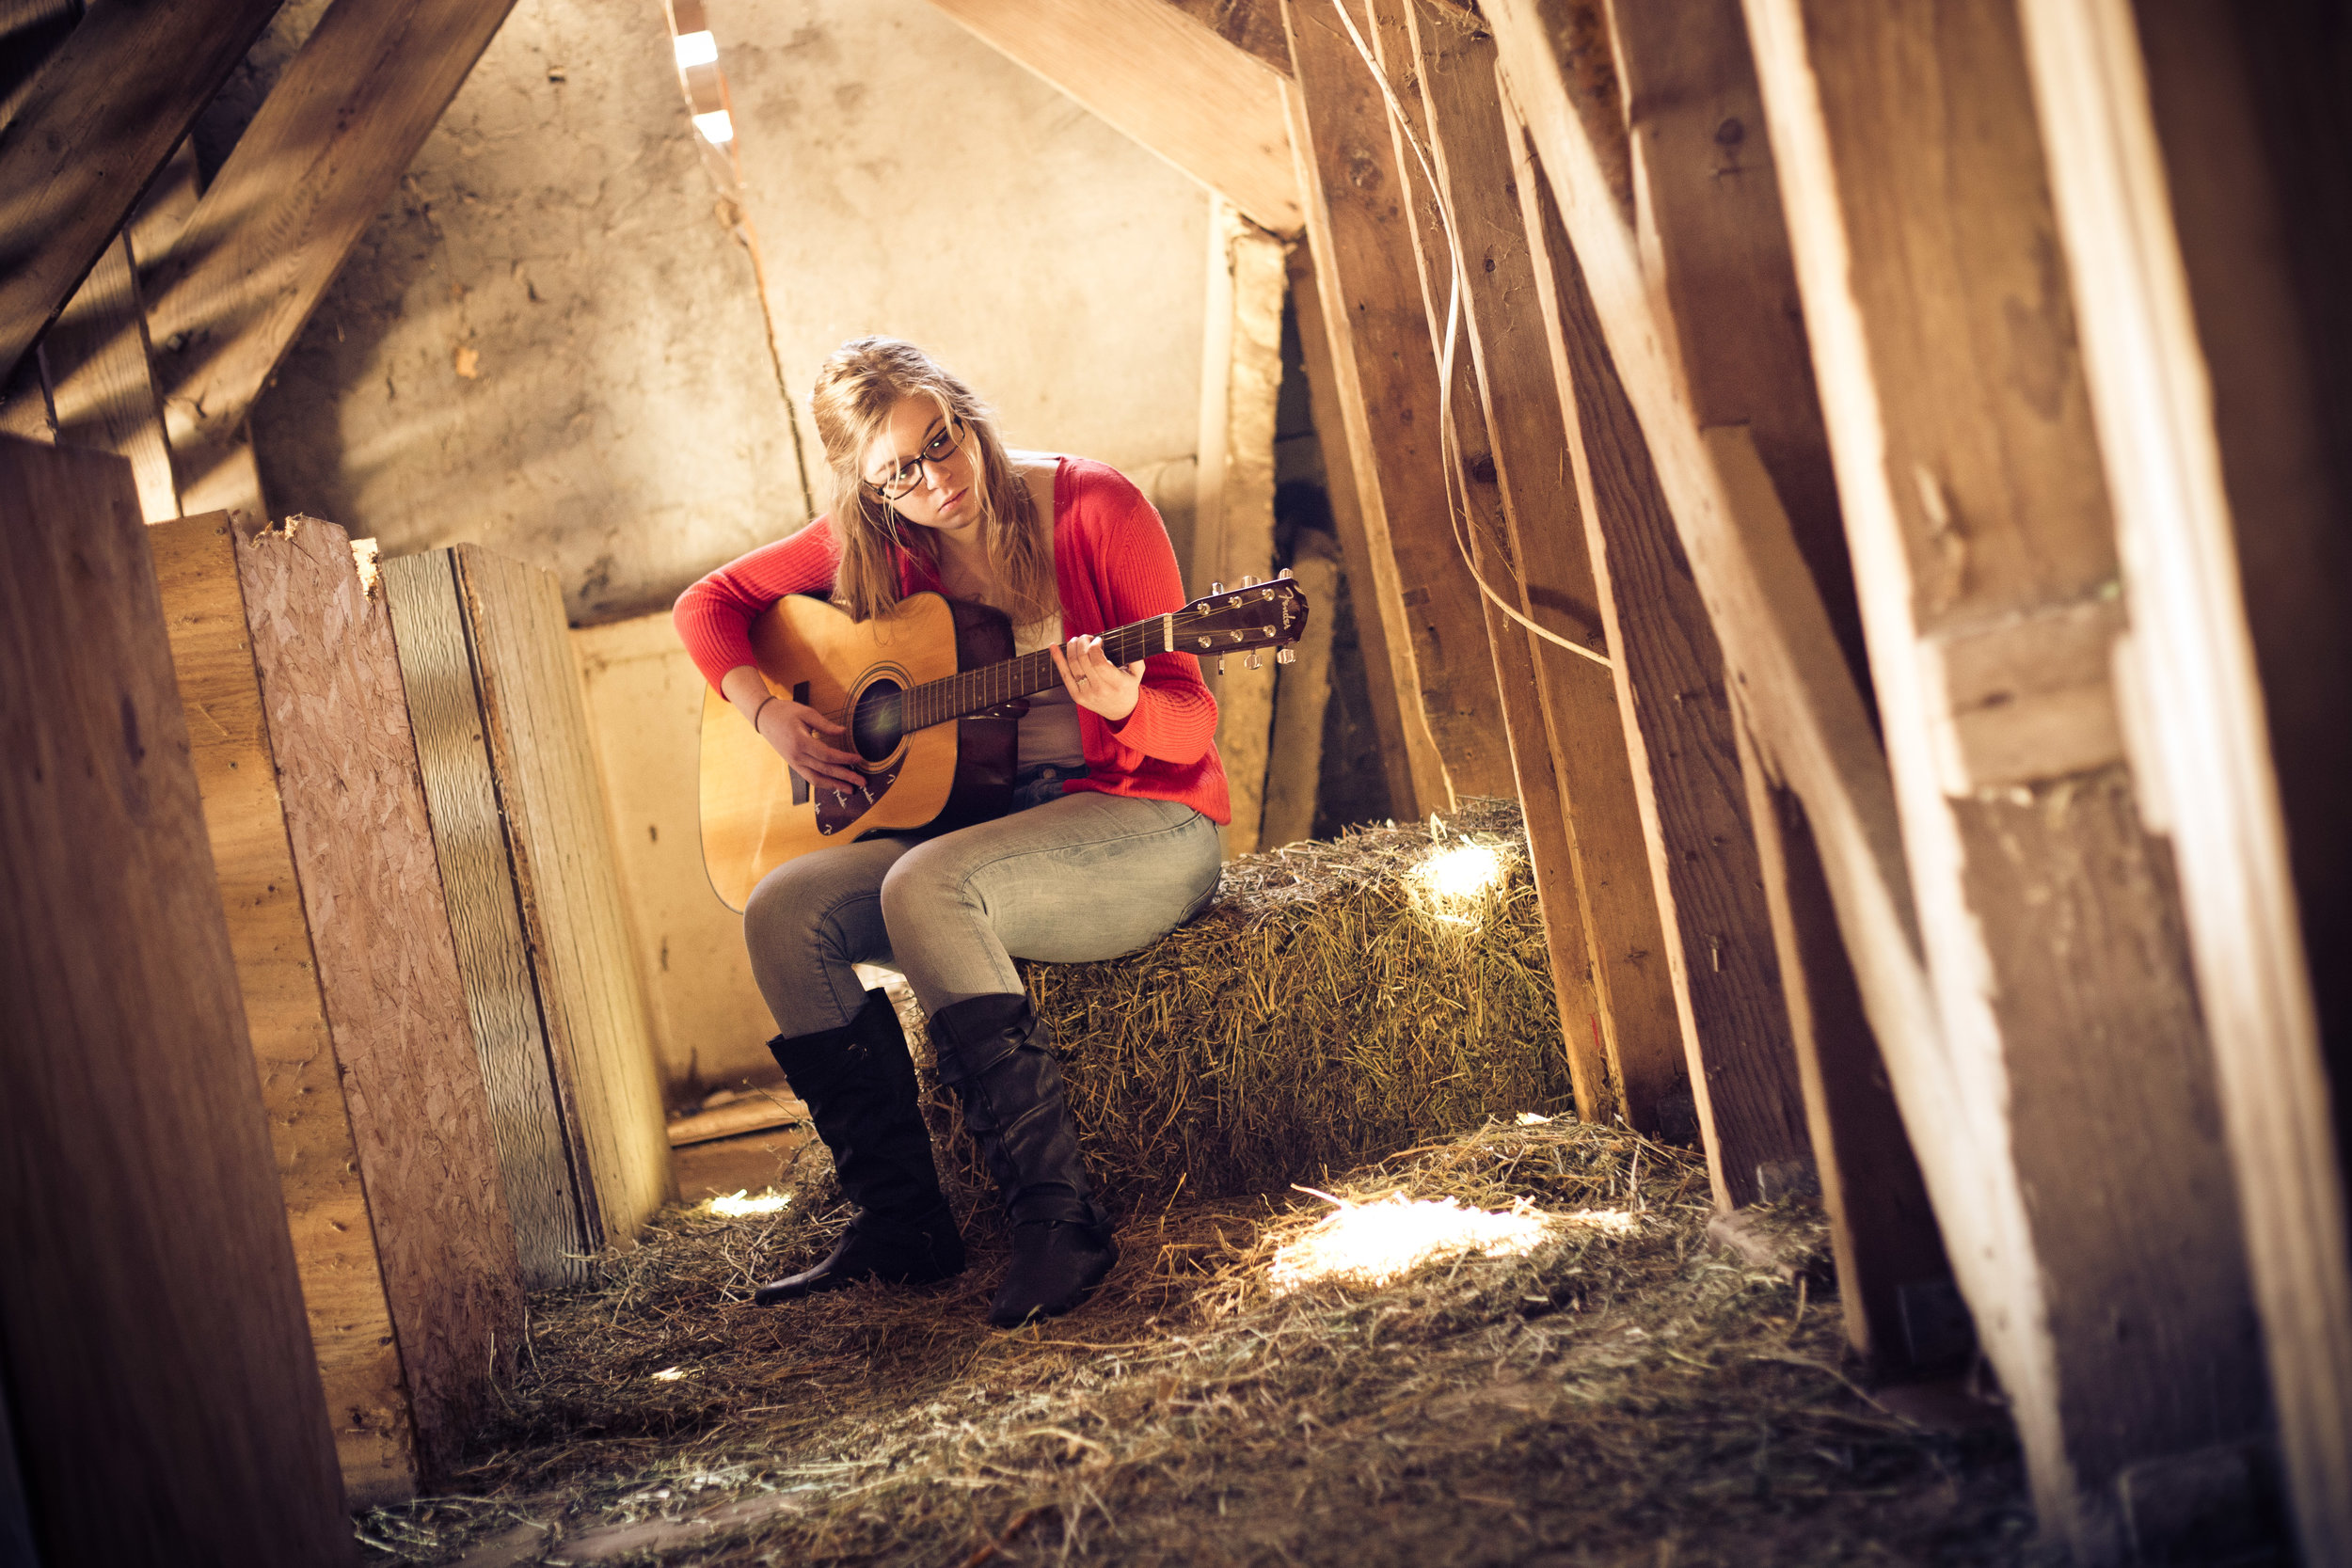 senior portrait of a girl playing guitar in barn